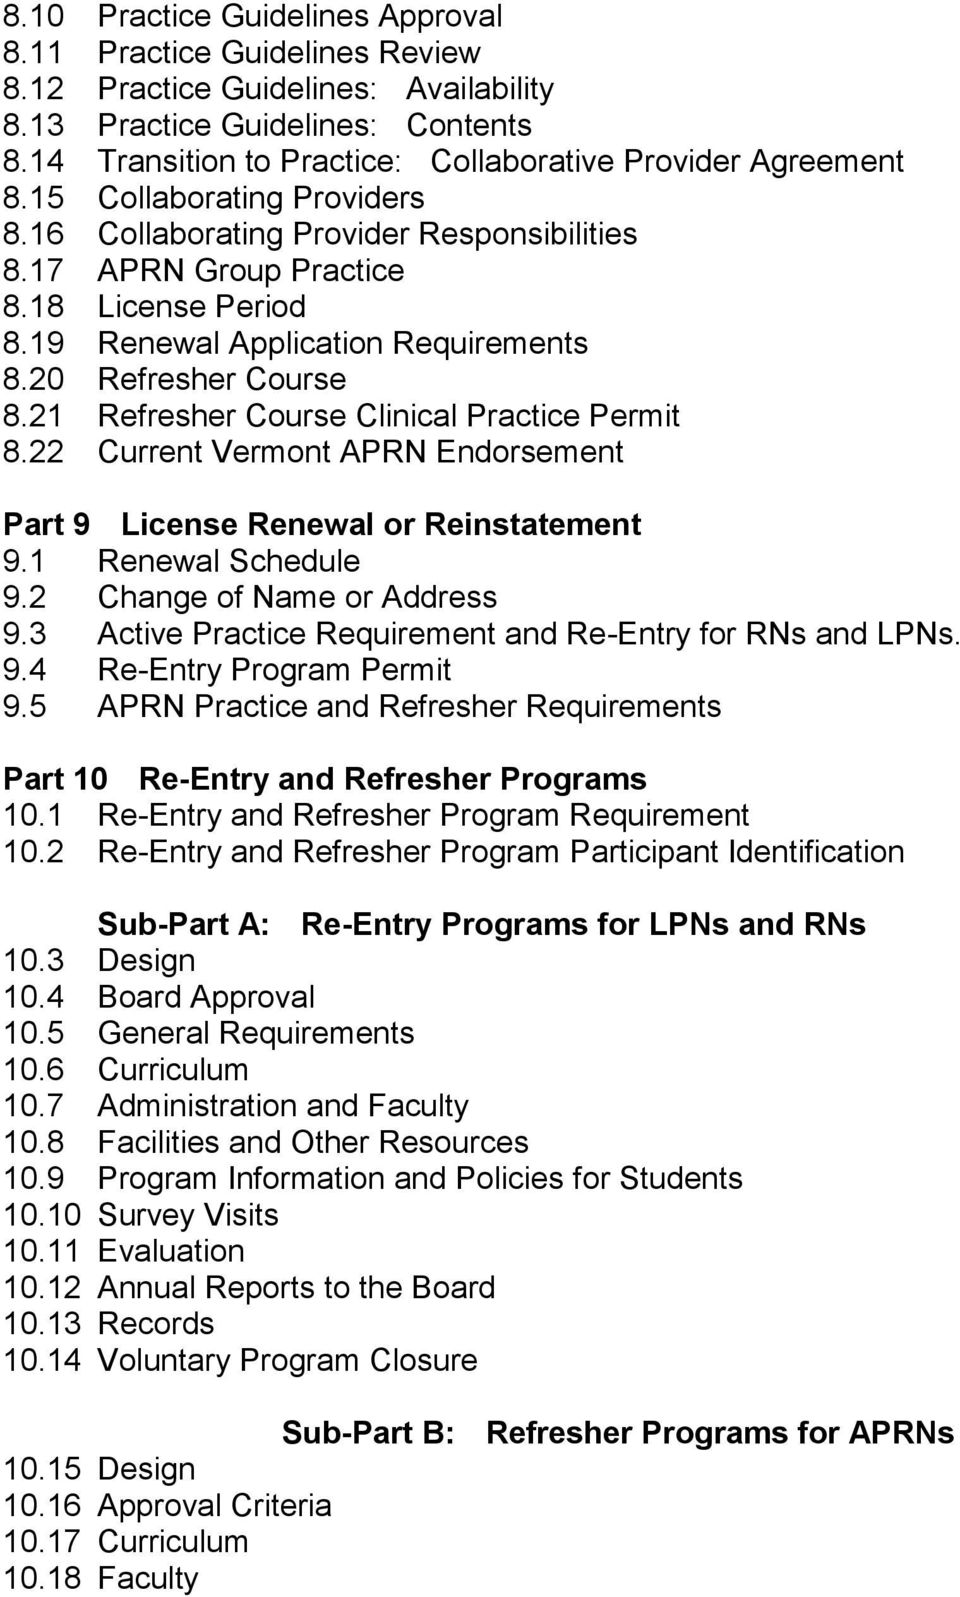 19 Renewal Application Requirements 8.20 Refresher Course 8.21 Refresher Course Clinical Practice Permit 8.22 Current Vermont APRN Endorsement Part 9 License Renewal or Reinstatement 9.